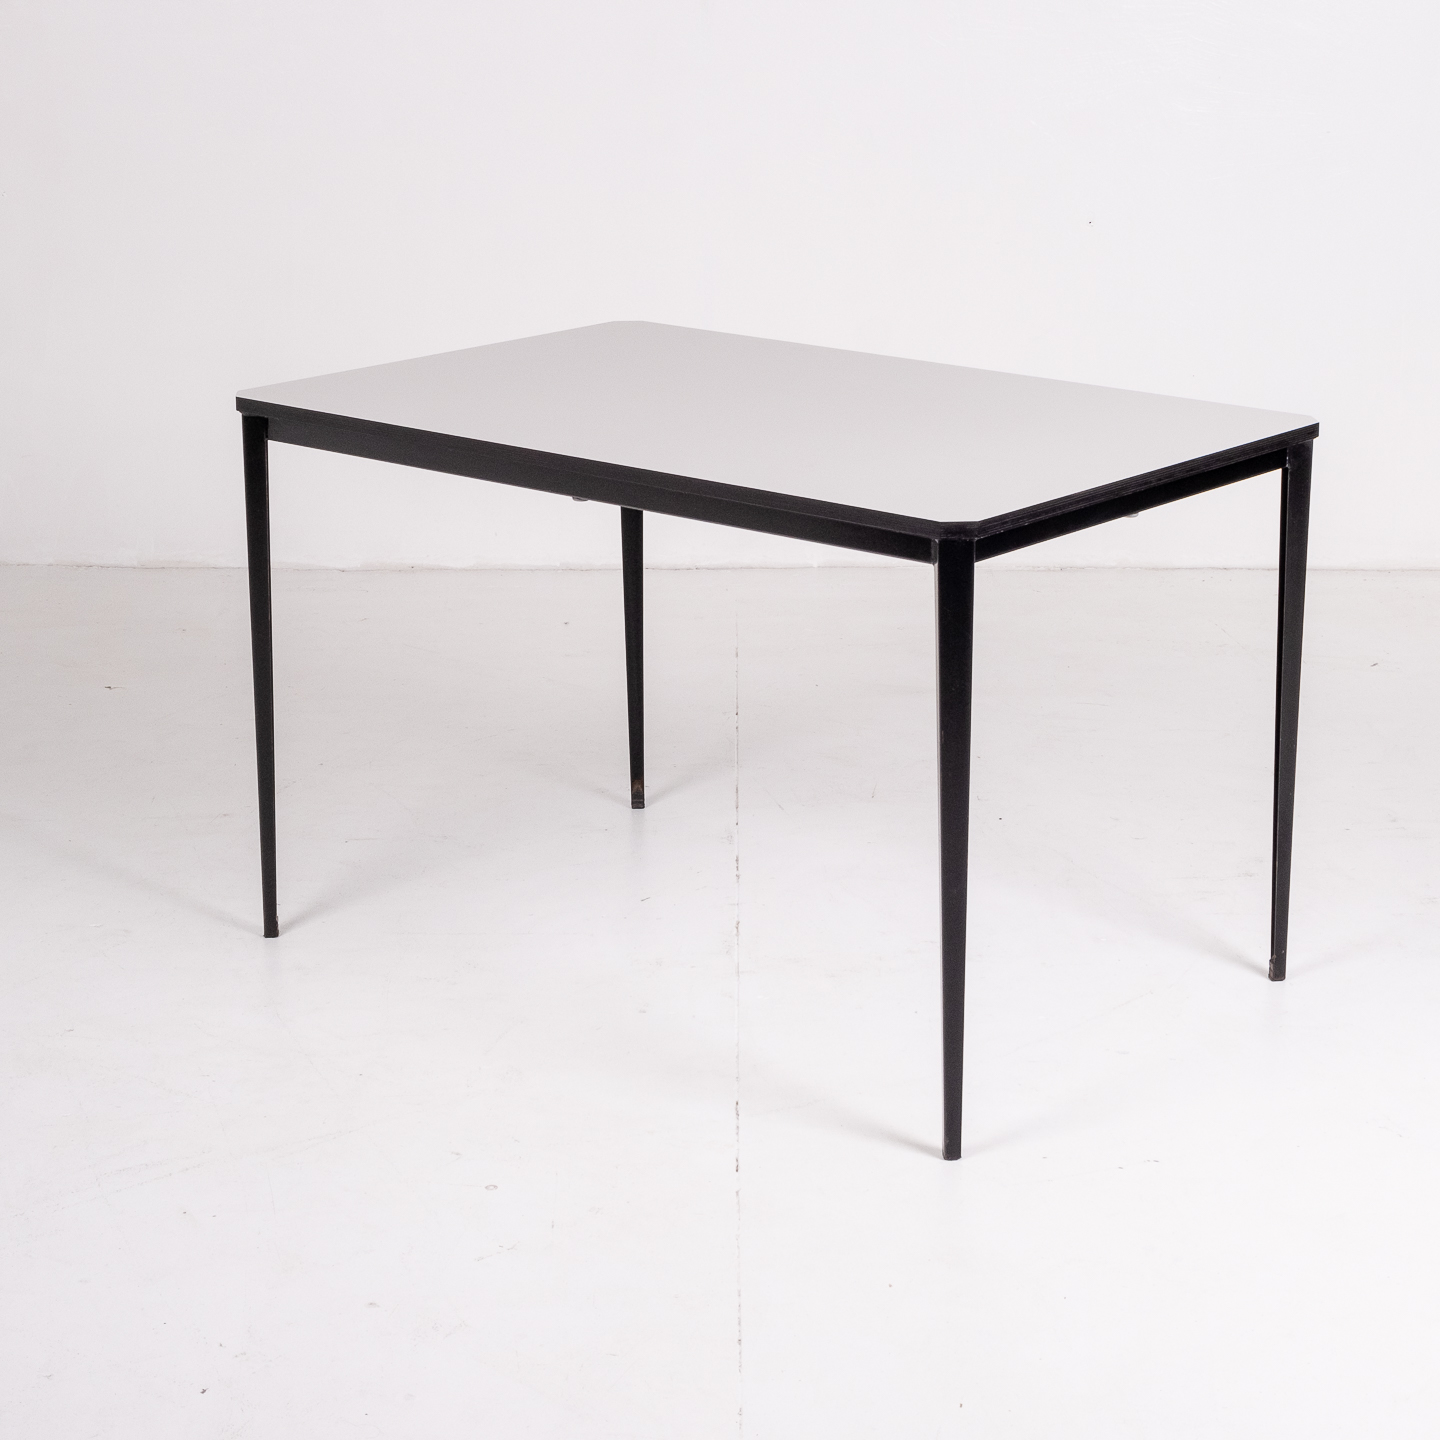 Recent Table By Wim Rietveld For Ahrend De Cirkel With Black Steel Base, 1960s, The Netherlands56